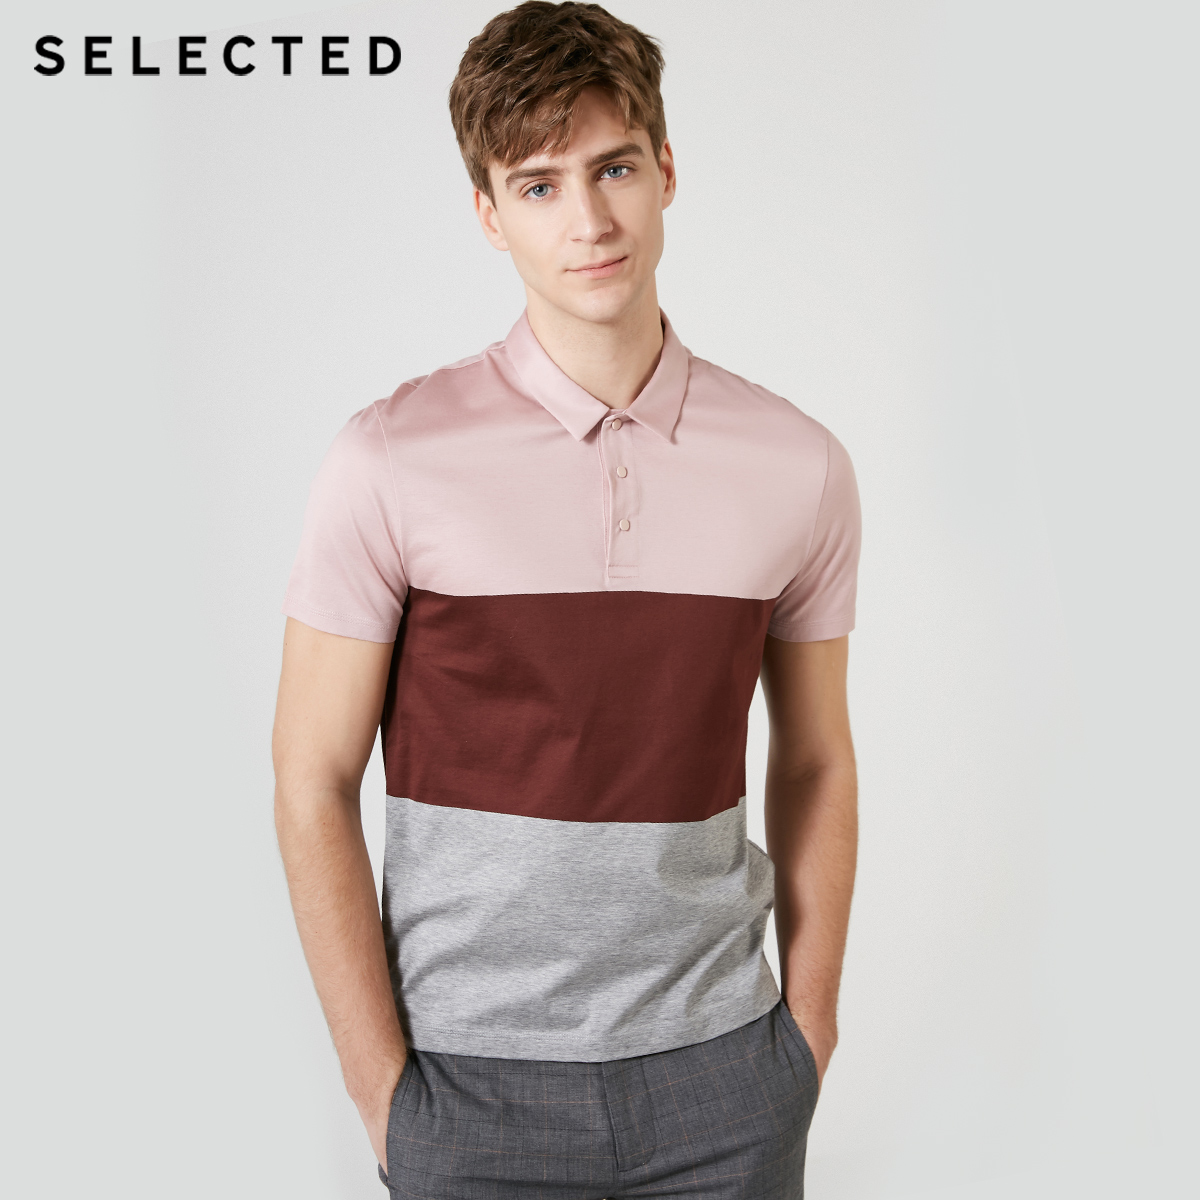 SELECTED Spliced Colored Short-sleeved Turn-down Collar Poloshirt S|419206530